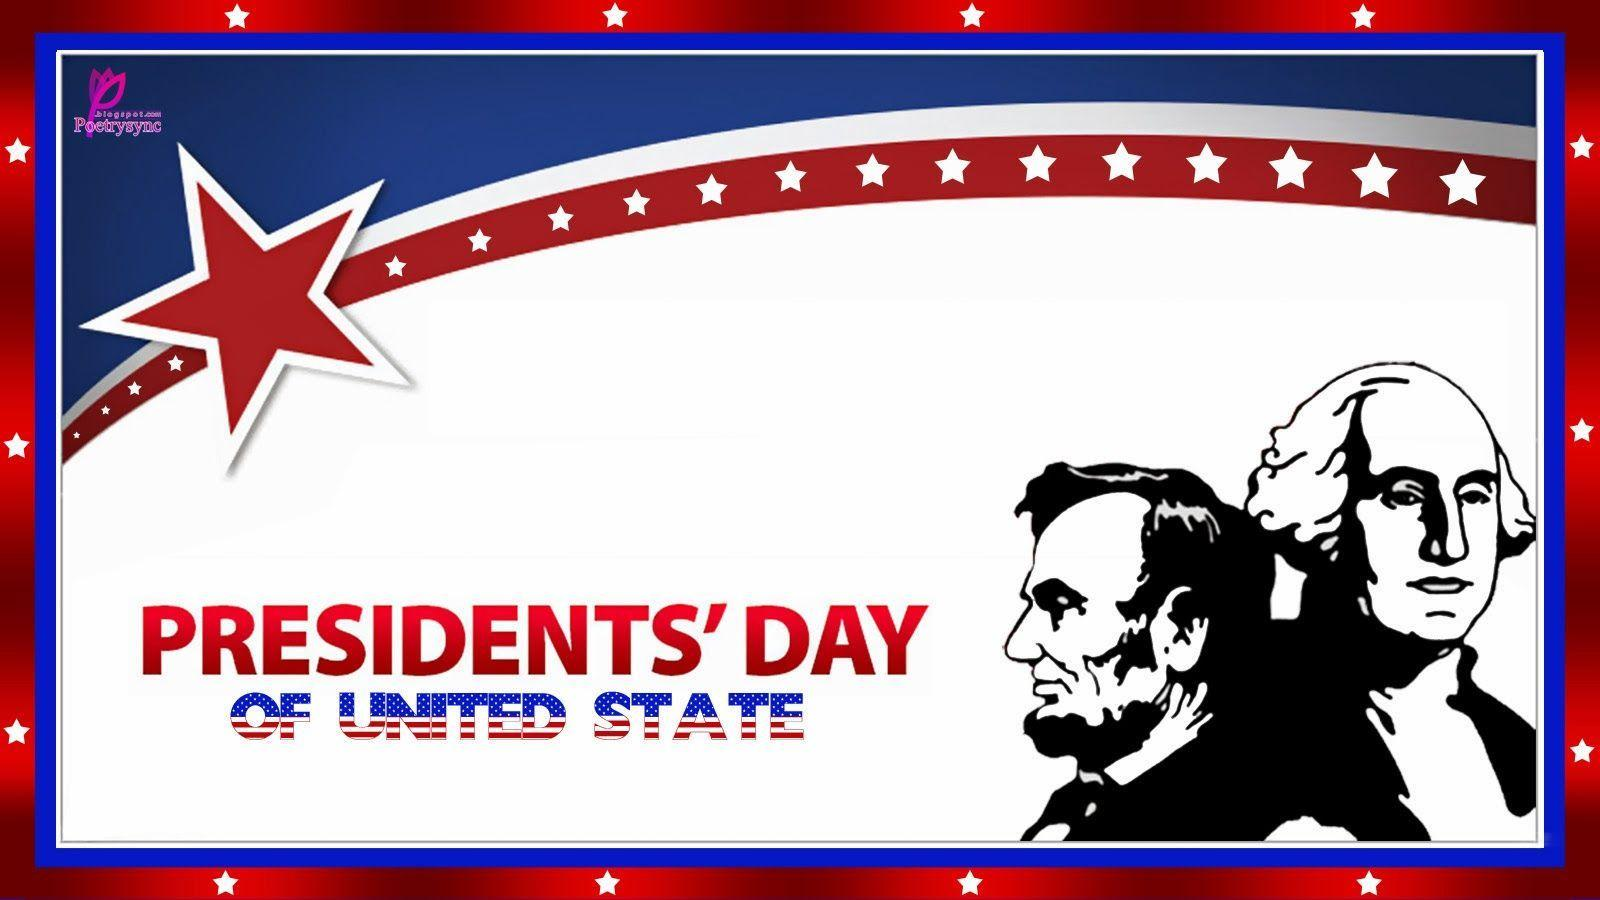 Presidents' Day Greeting Images and Wallpapers with Wishes Quotes ...